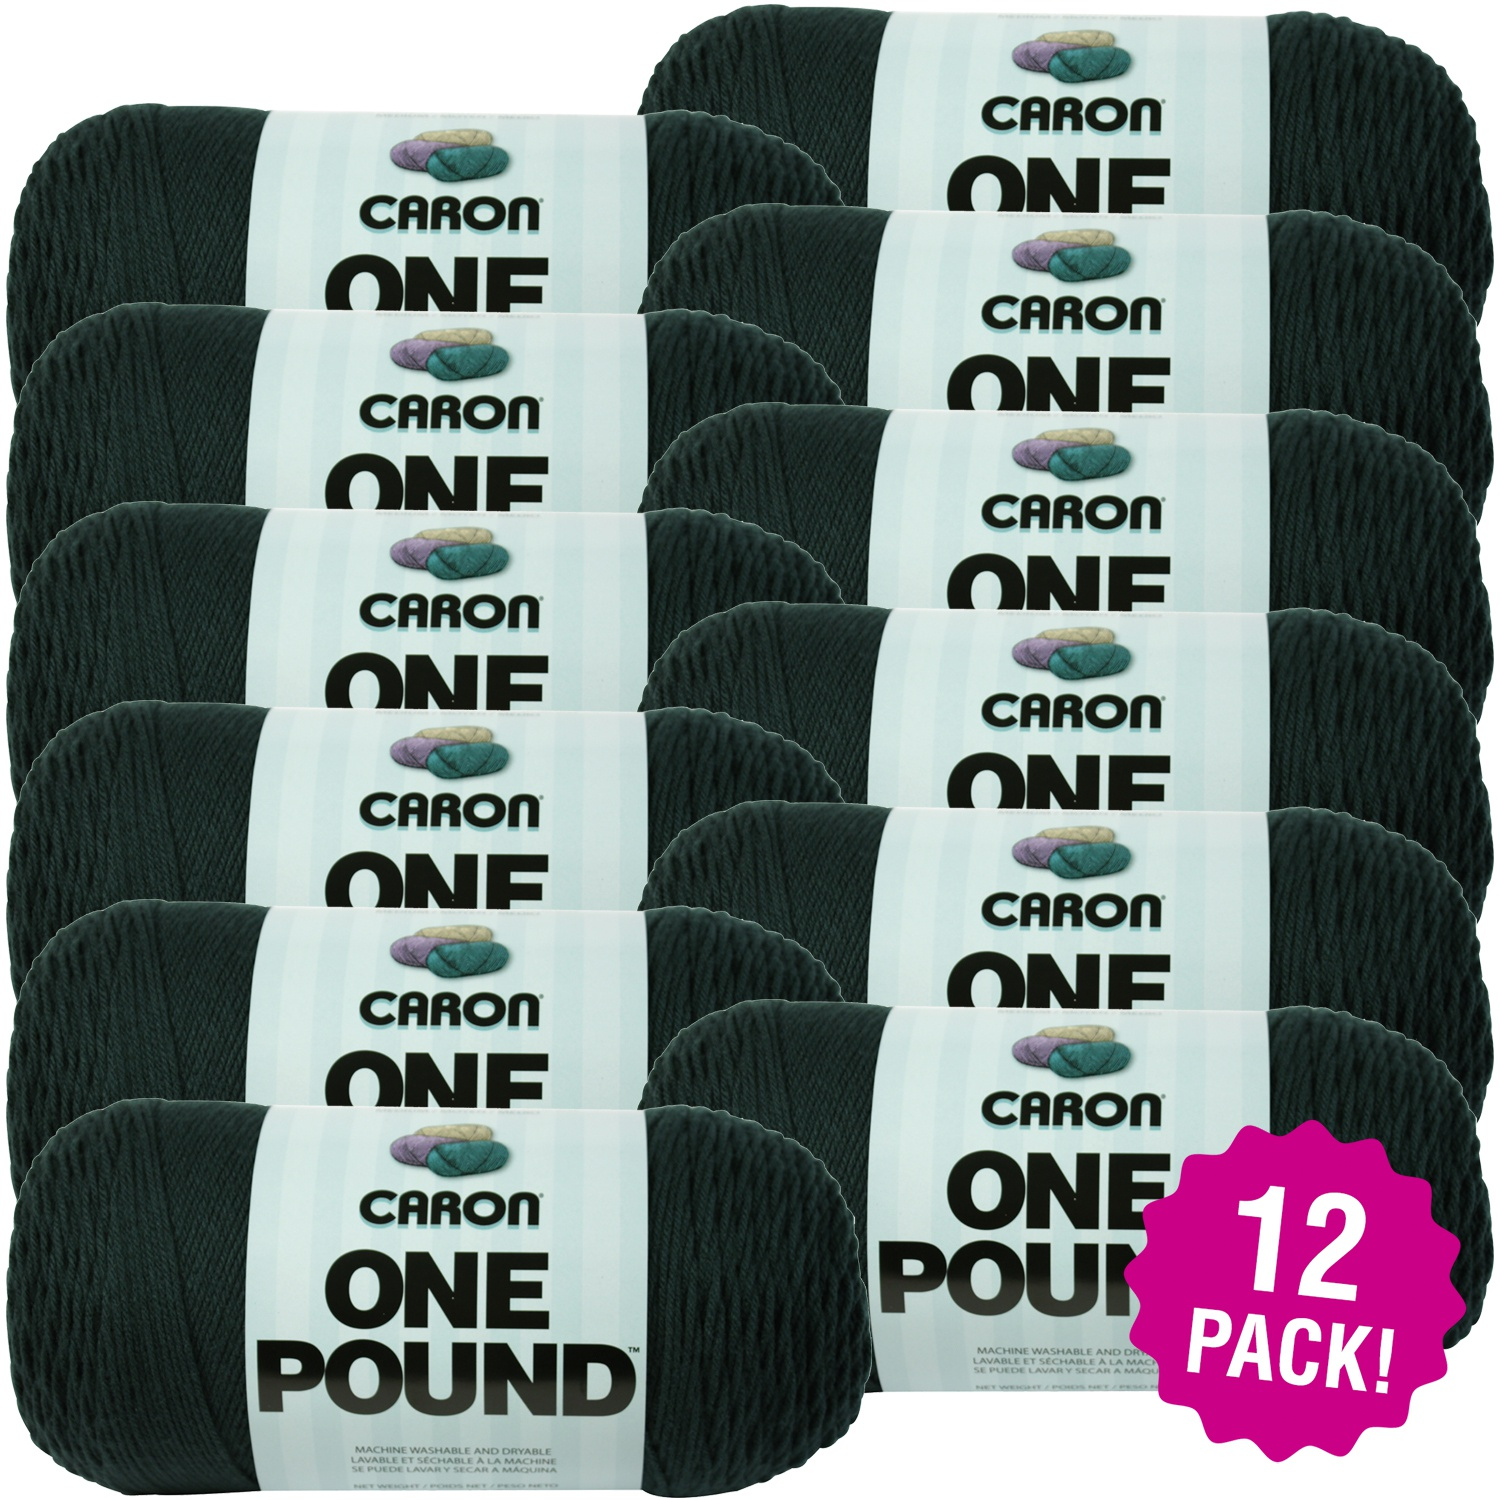 Caron One Pound Yarn - Forest Green, Multipack of 12